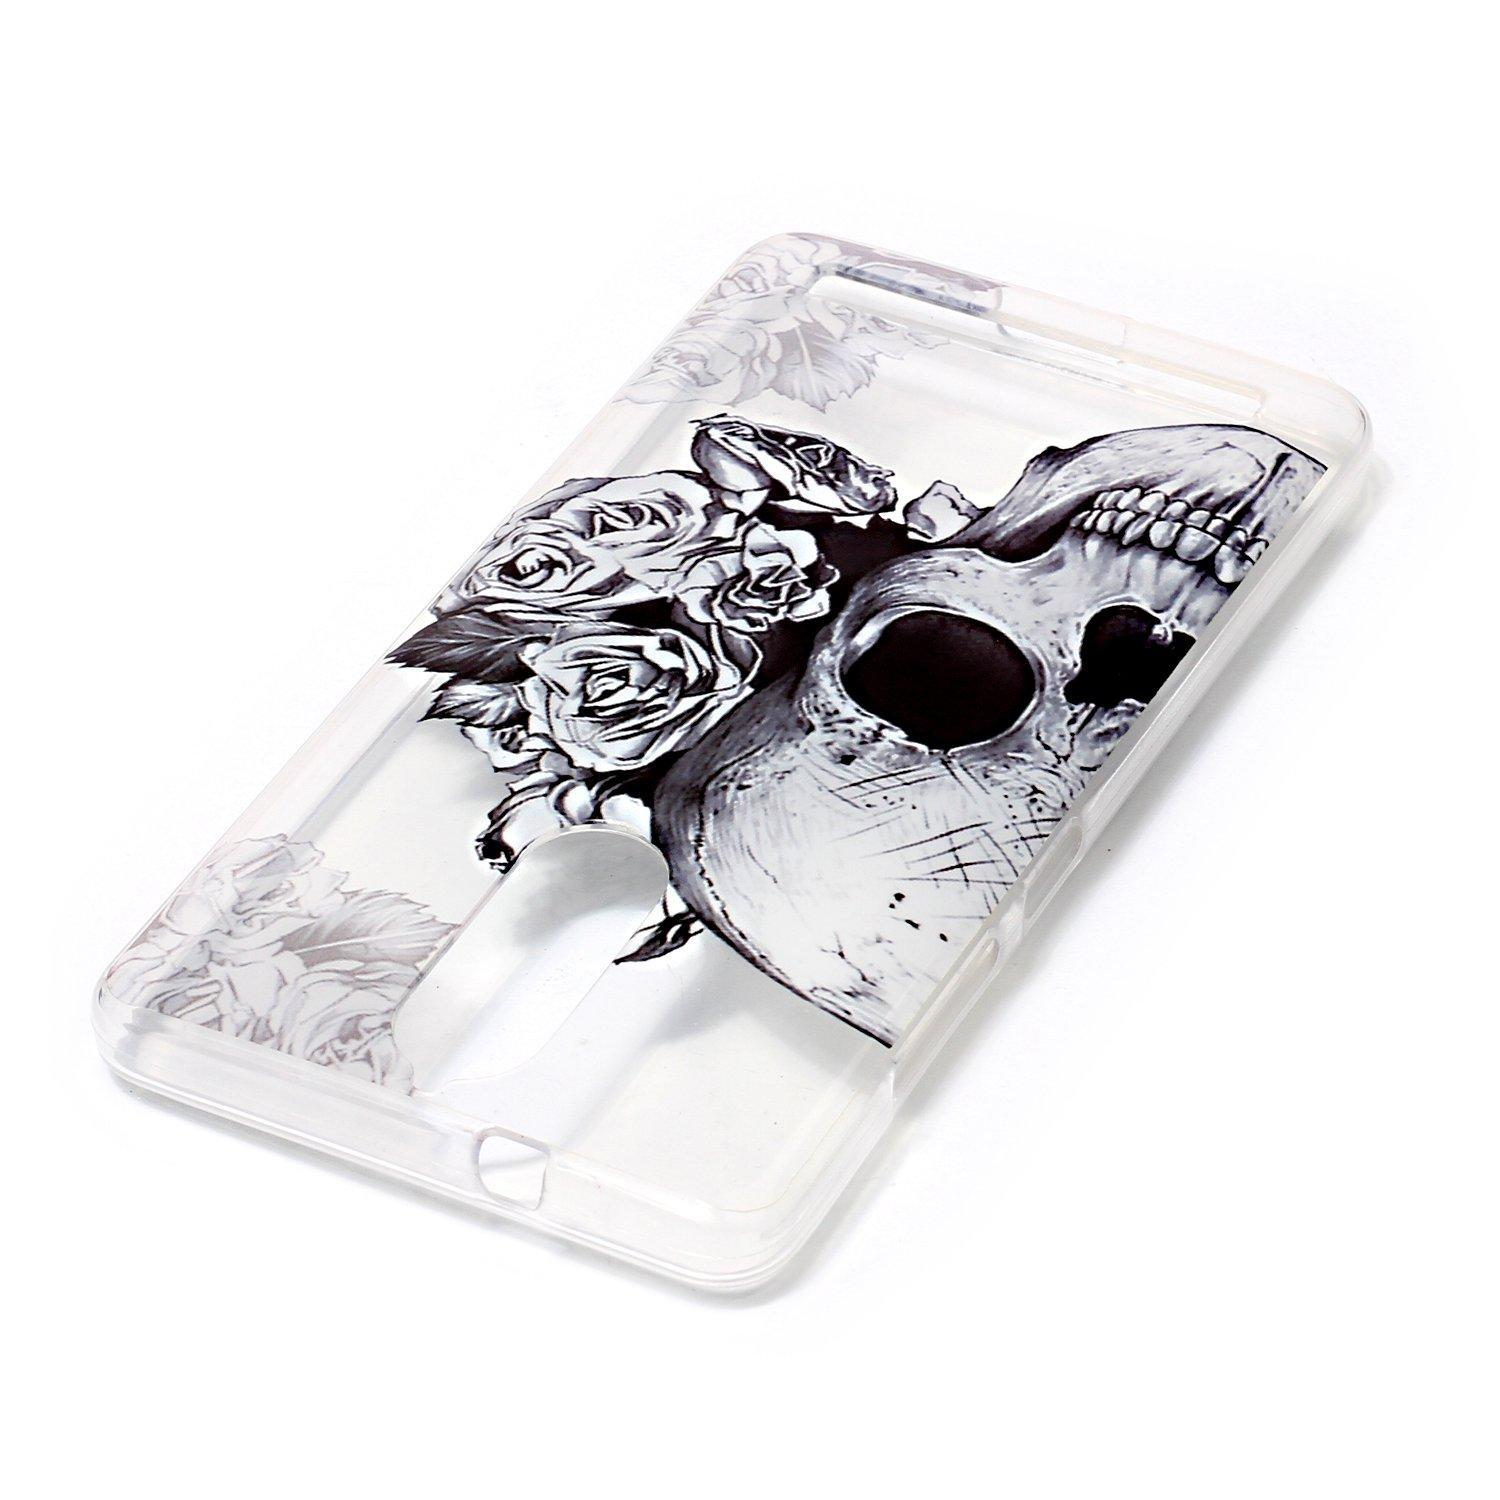 ... Ueokeird Protective Anti-Scratch Crystal Shock Proof Soft Thin TPUPhone Case Cover For Lenovo Vibe ...